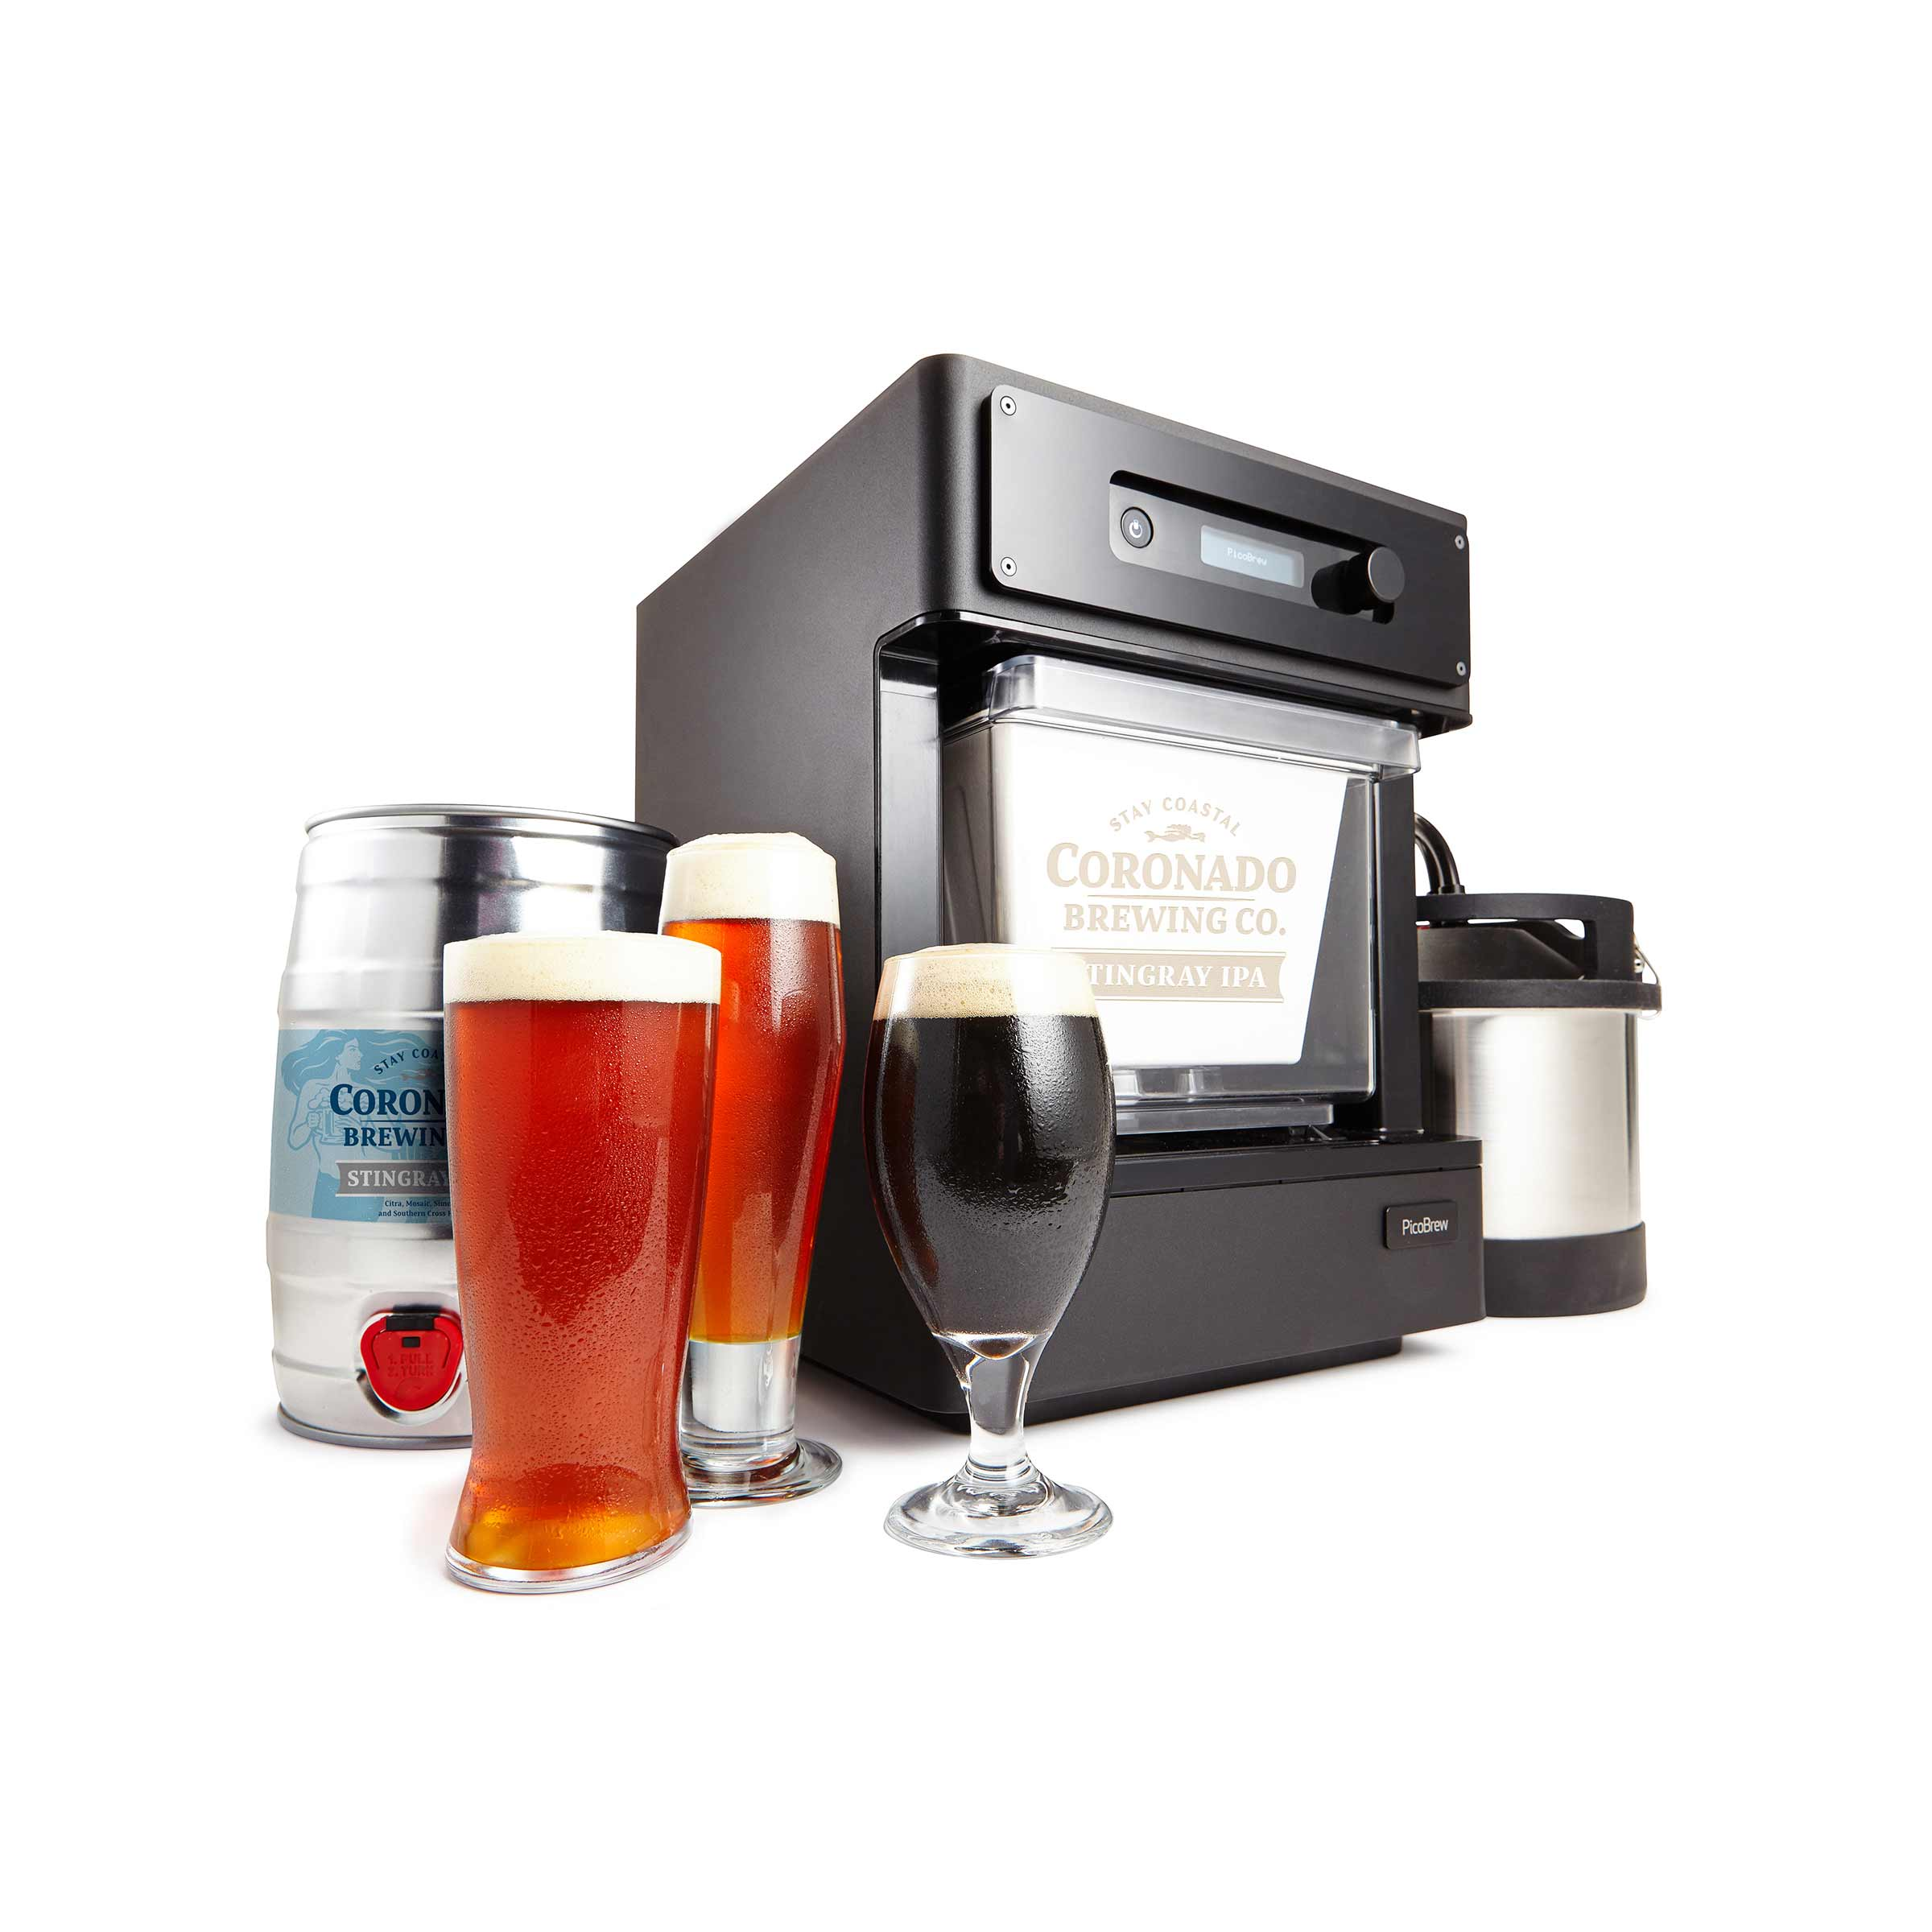 Pico C White Background with Serving Keg